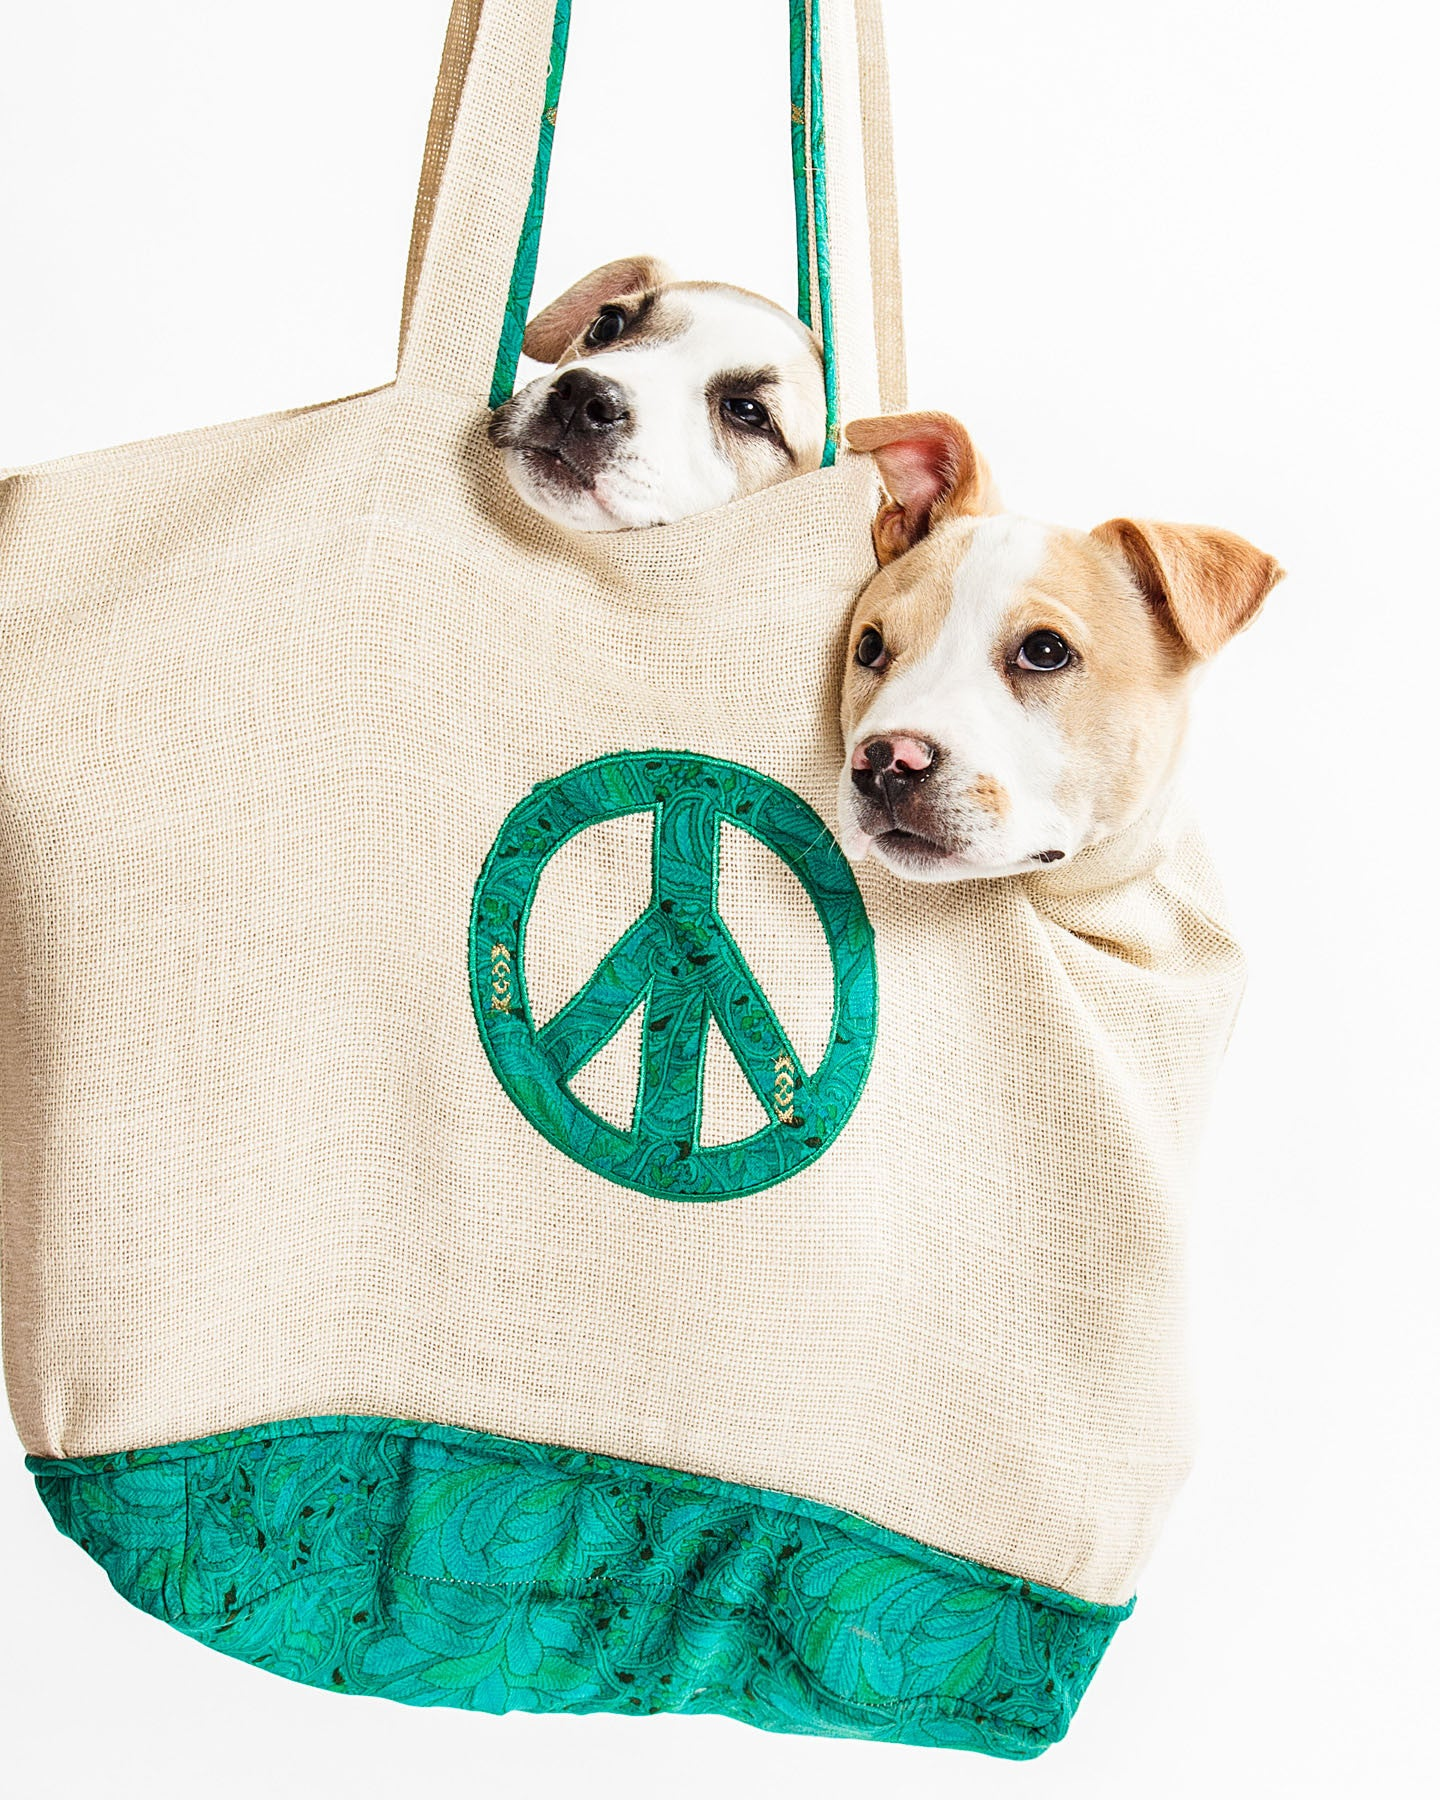 Puppies at peace in the Who's Sari Now? Peace Tote.